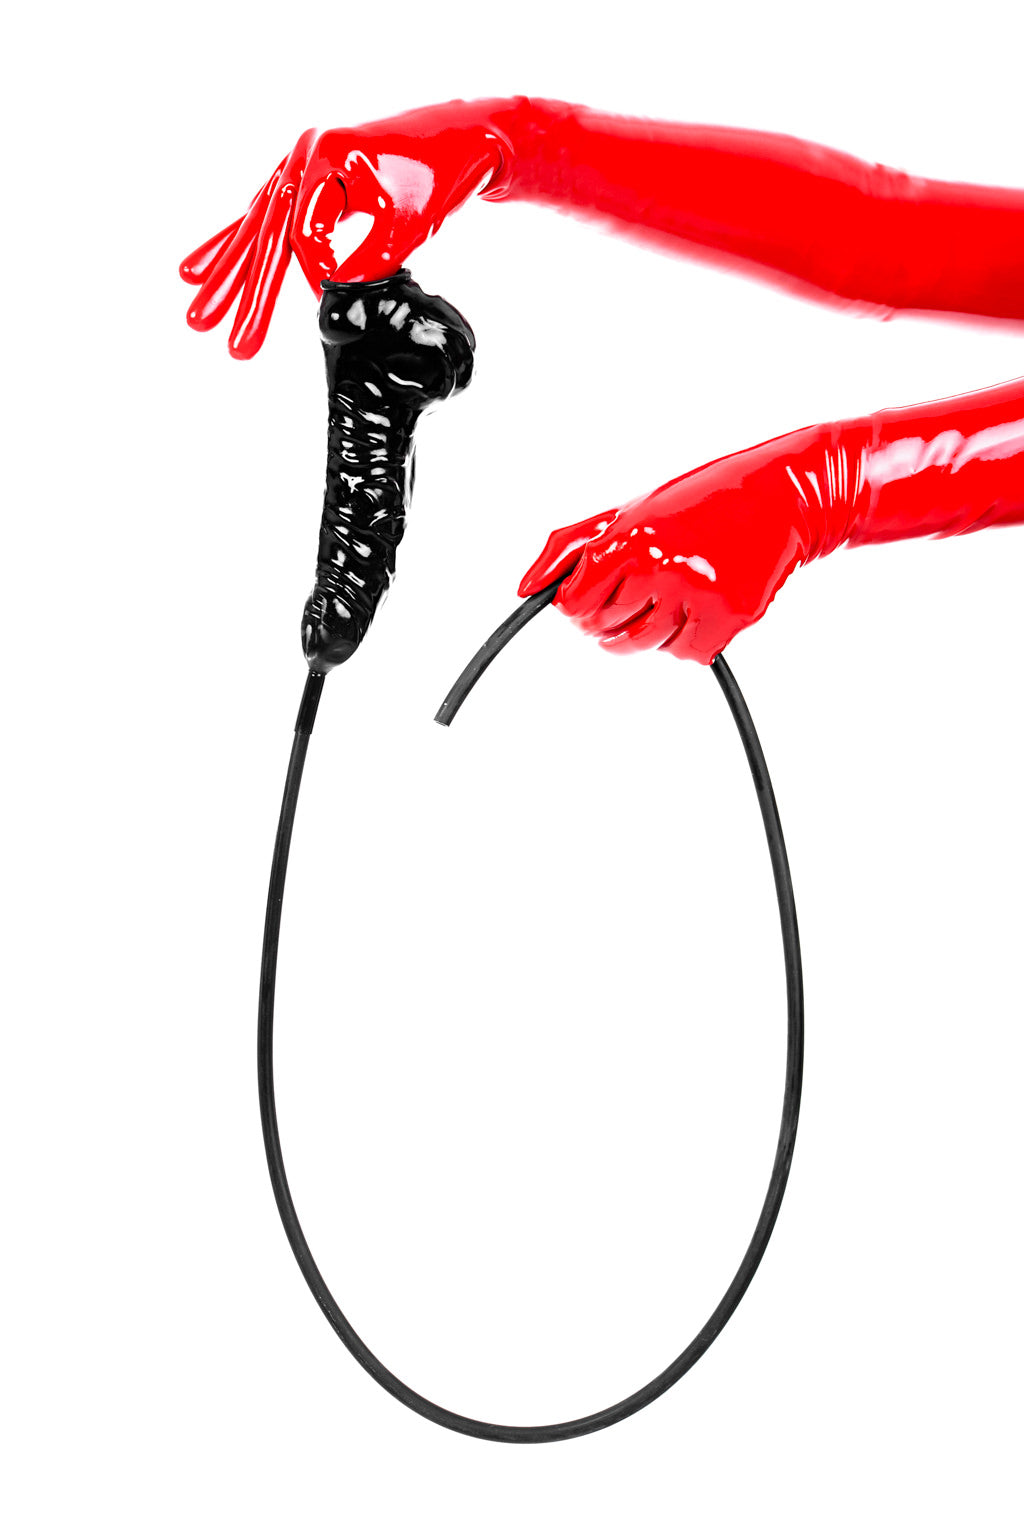 Red latex gloves holding an anatomical cock and ball penis sheath with long flush tube.